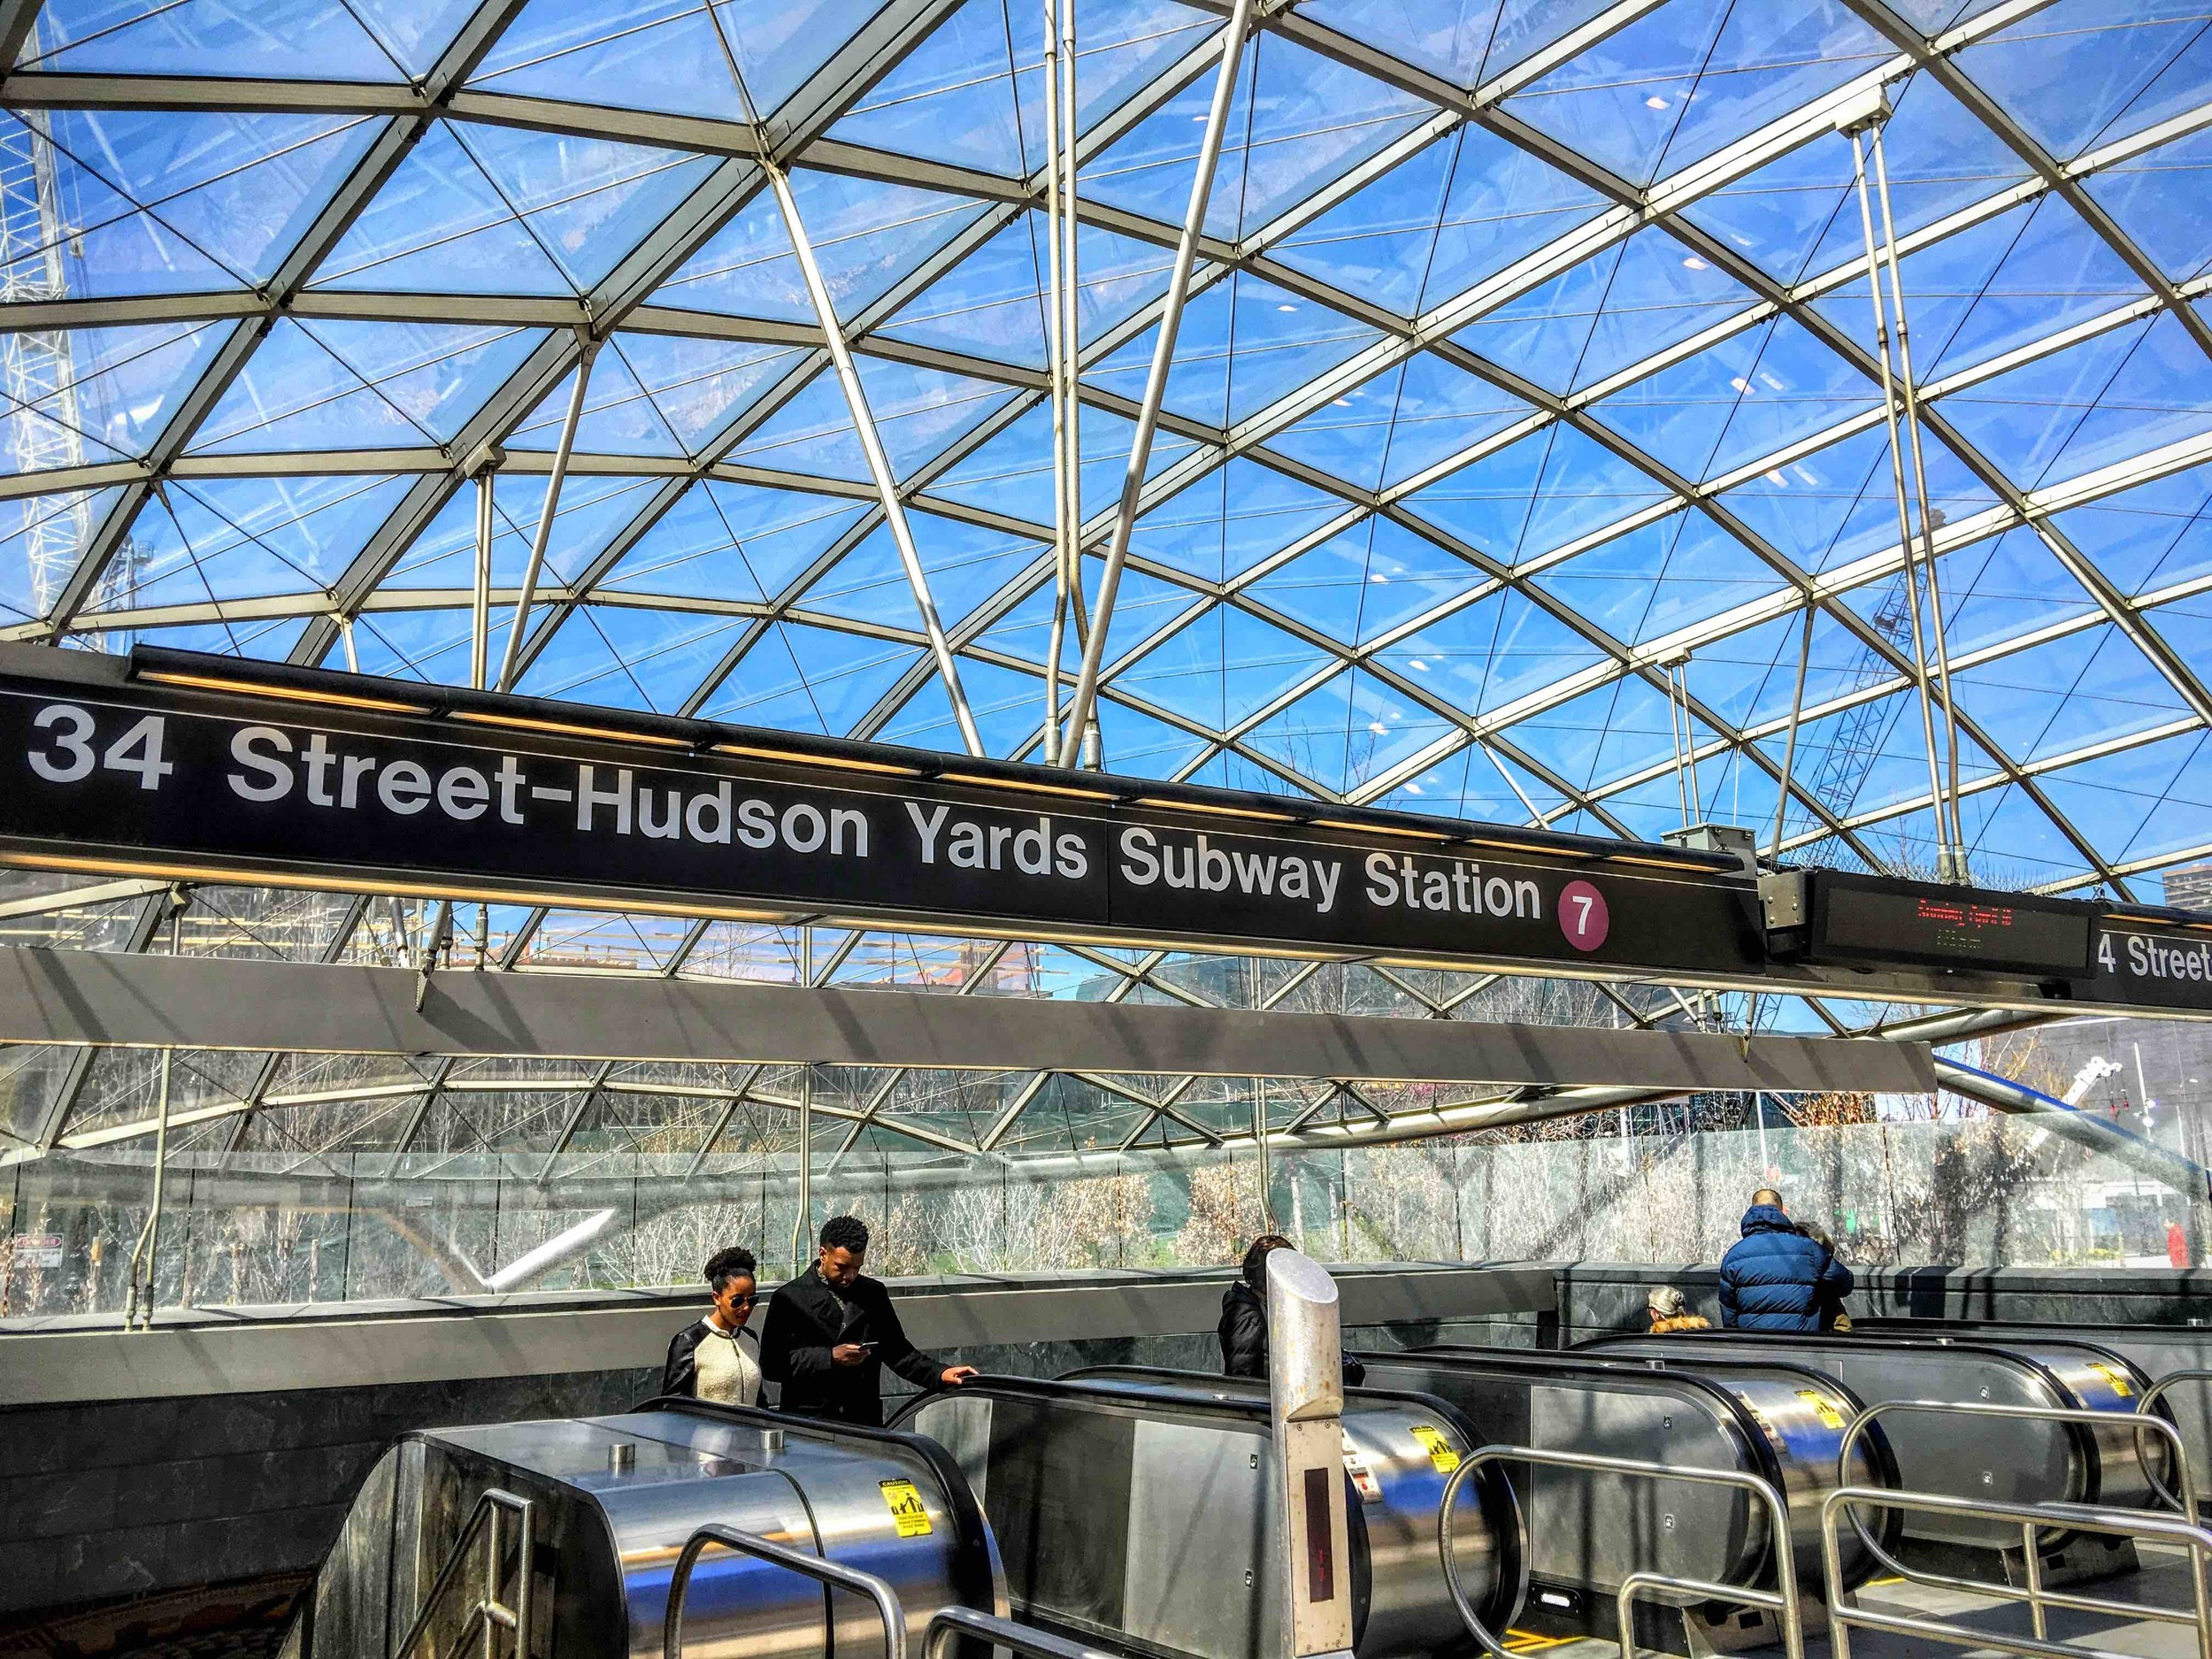 the-welcome-blog-tours-of-new-york-the-high-line-34th-street-hudson-yards